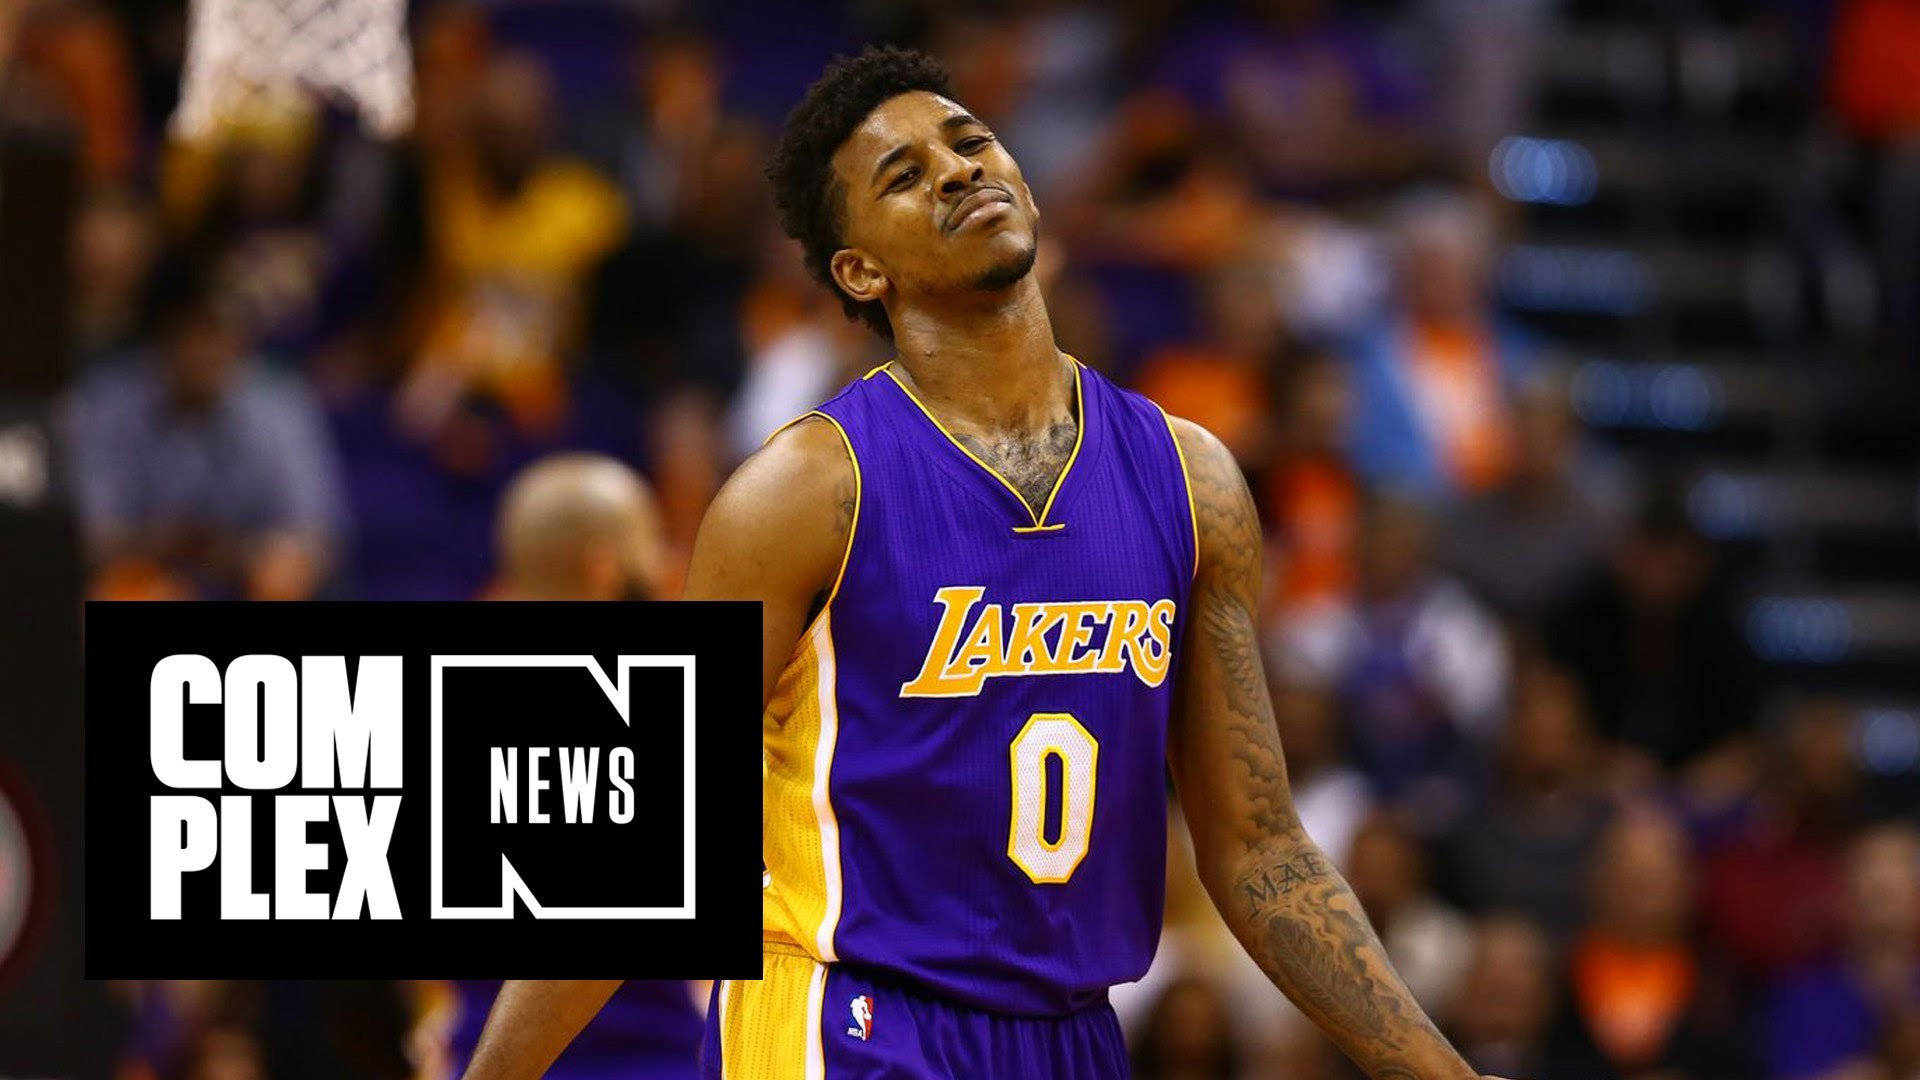 Nick Young Says Warriors 'Ain't Been the Same' Since Losing to Lakers